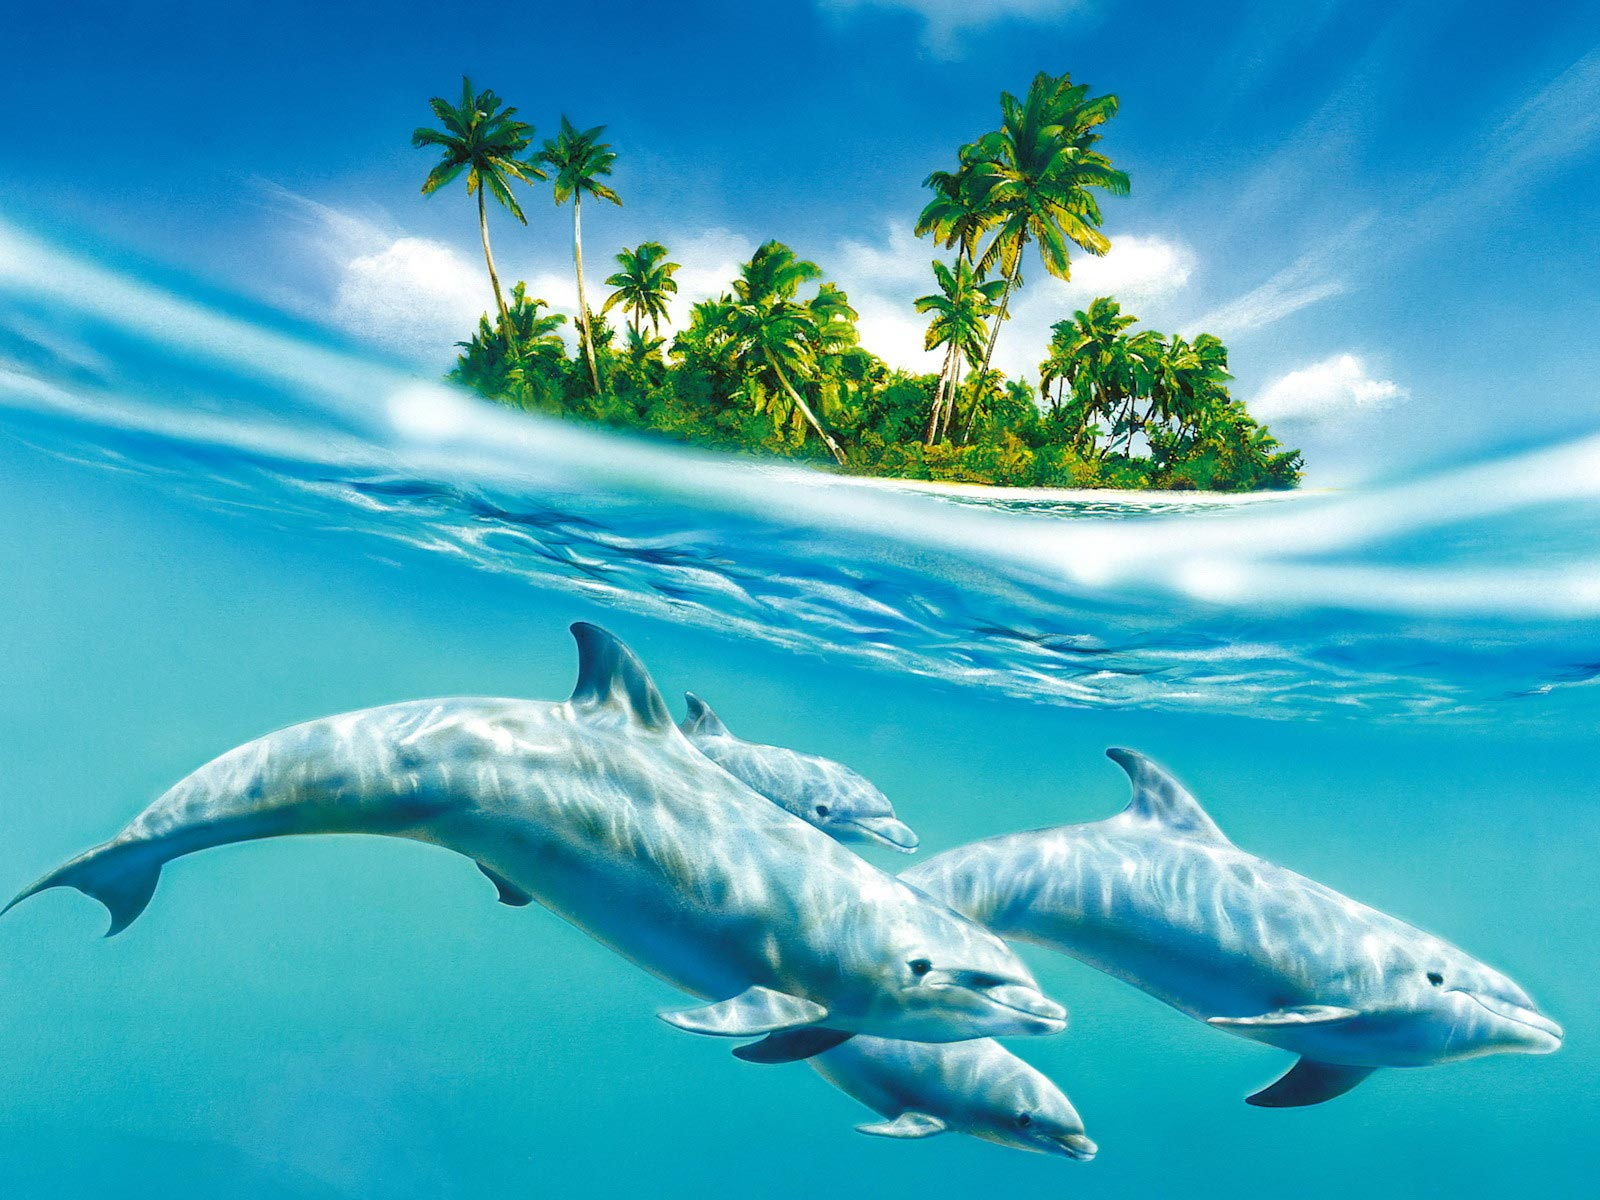 hd Blue Dolphins Wallpaper High Quality WallpapersWallpaper 1600x1200